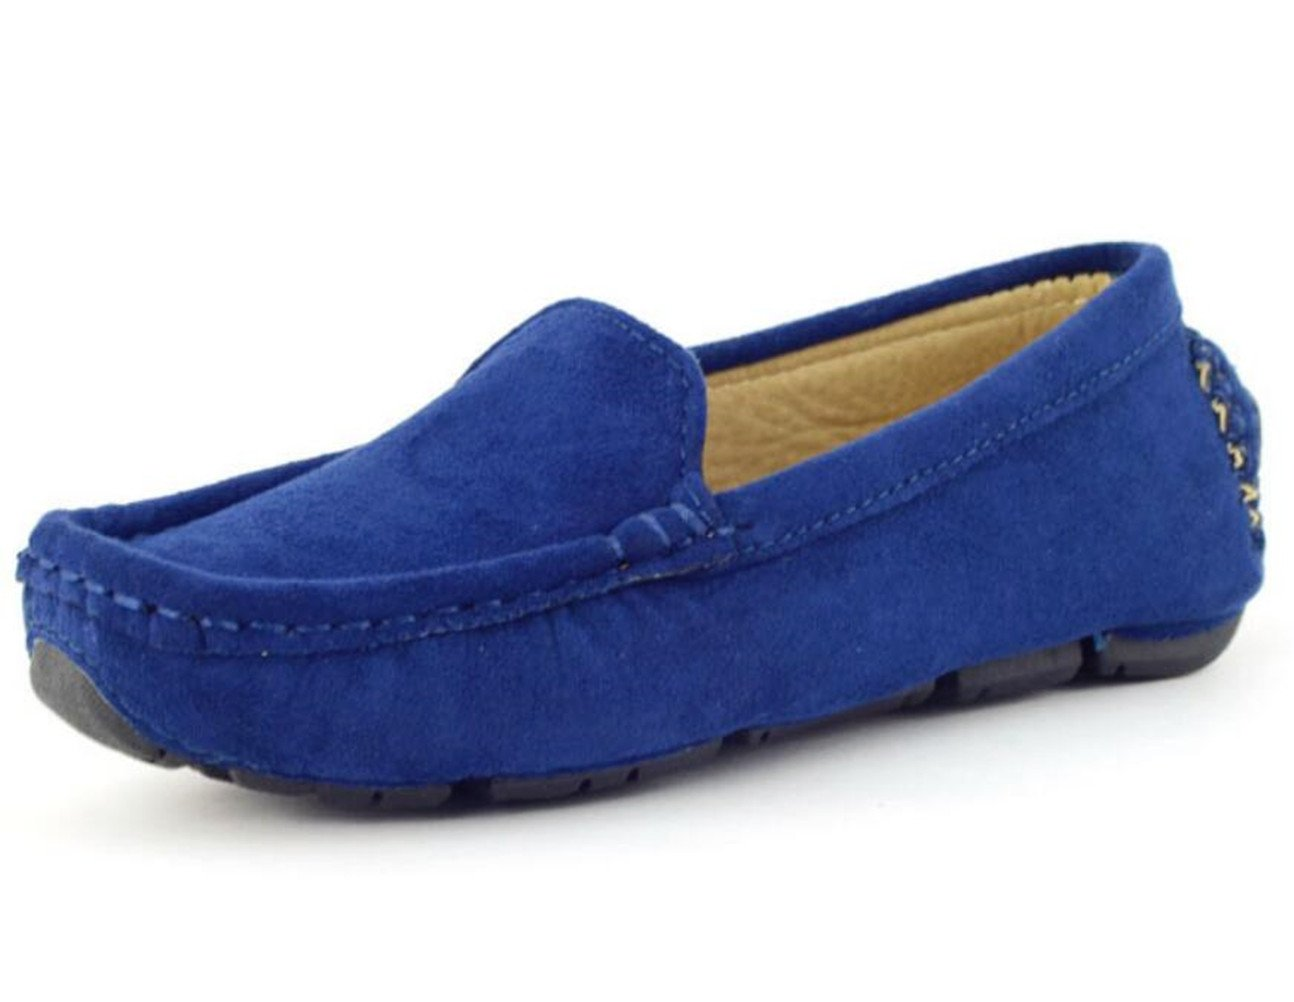 DADAWEN Girl's Boy's Suede Slip-on Loafers Oxford Shoes Blue US Size 7 M Toddler